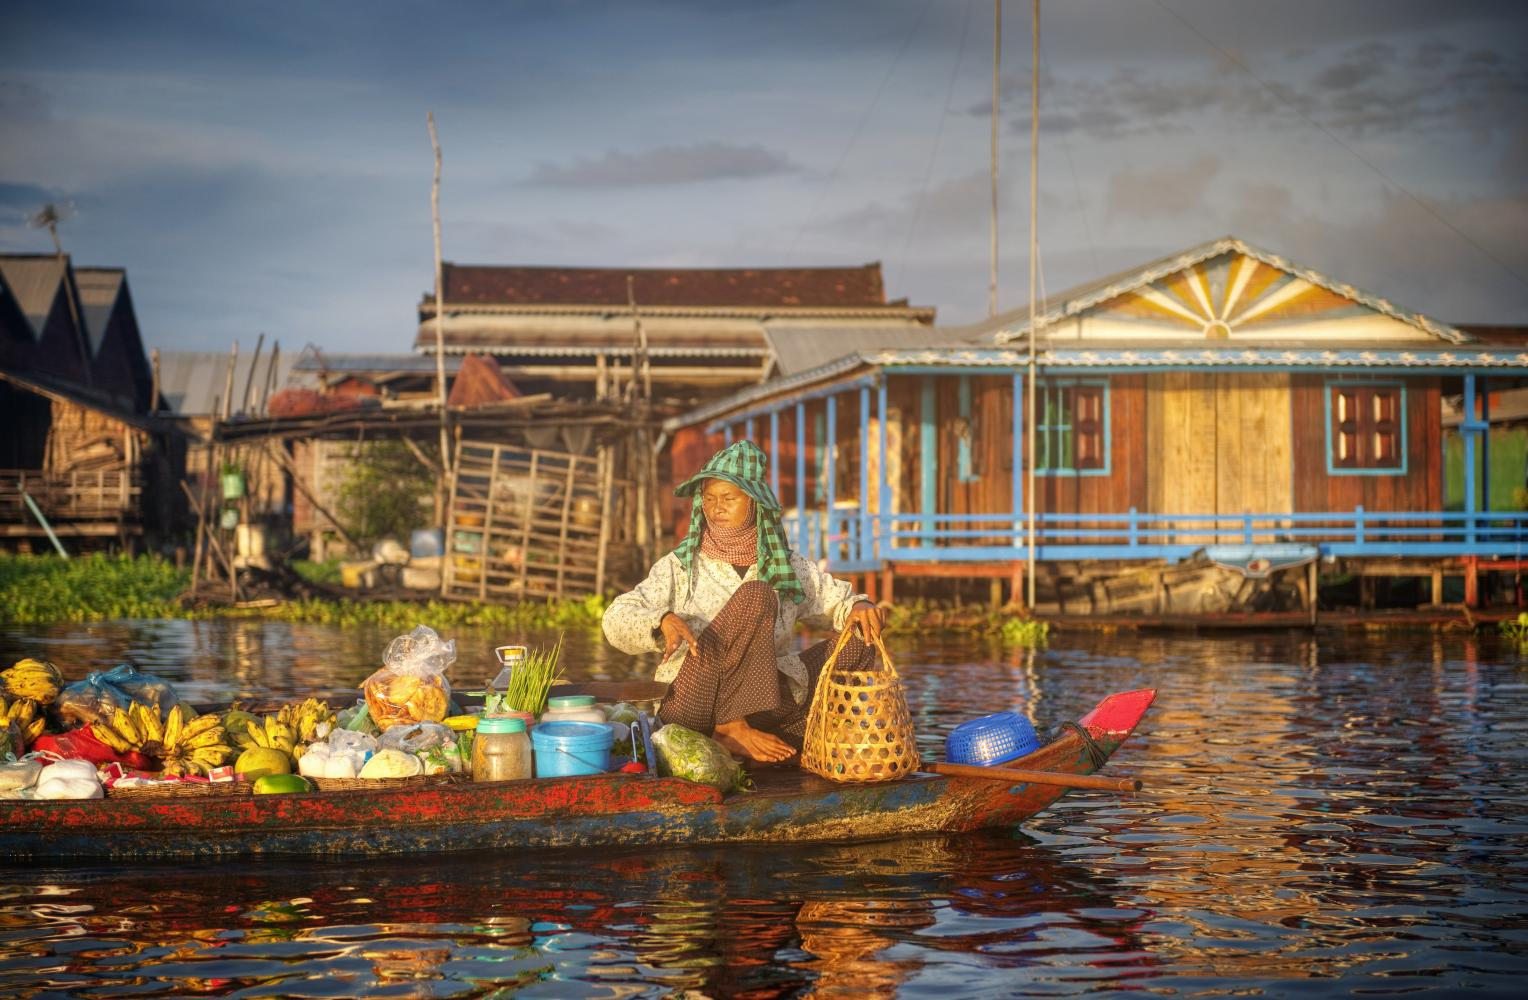 Woman selling fruits on a boat to symbolise basic commerce before the digital age.